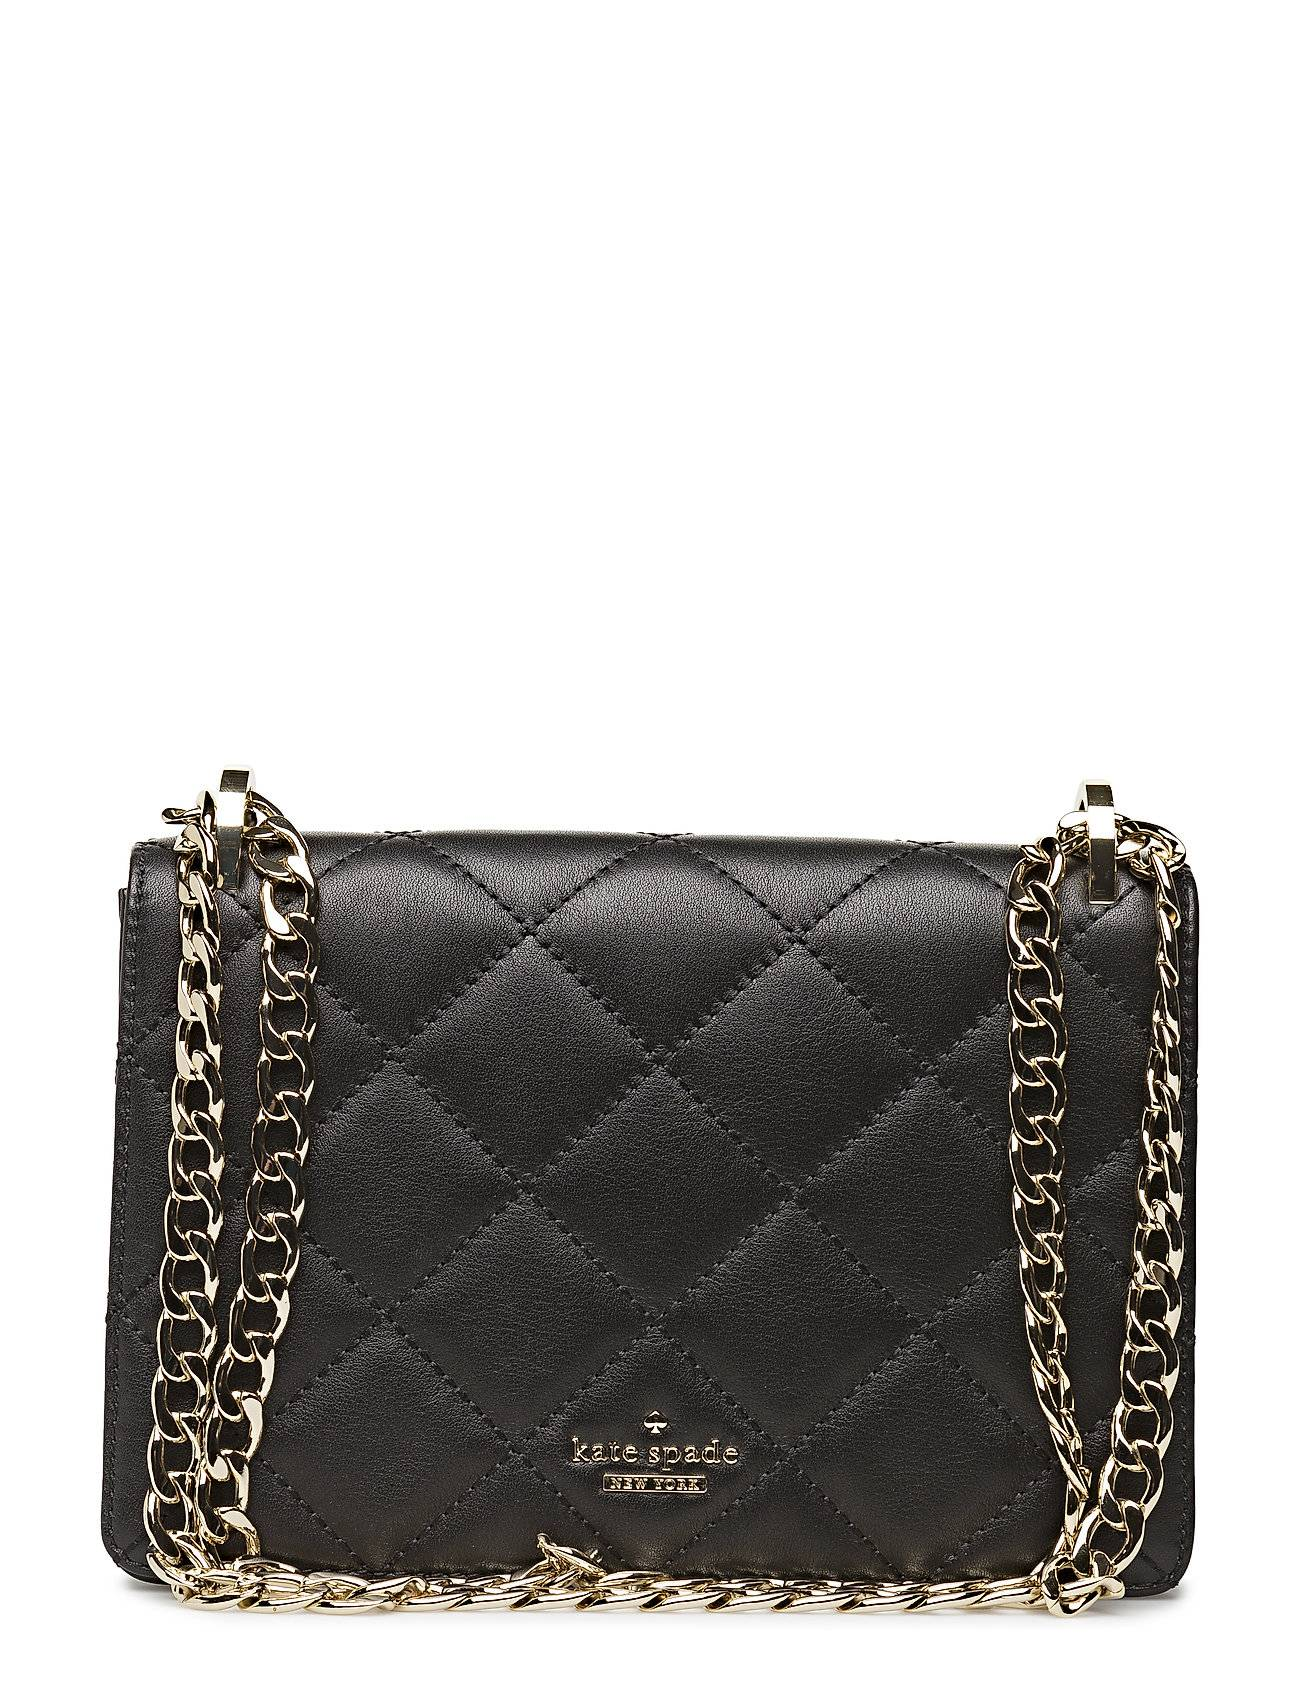 Kate Spade New York Emerson Place Marci